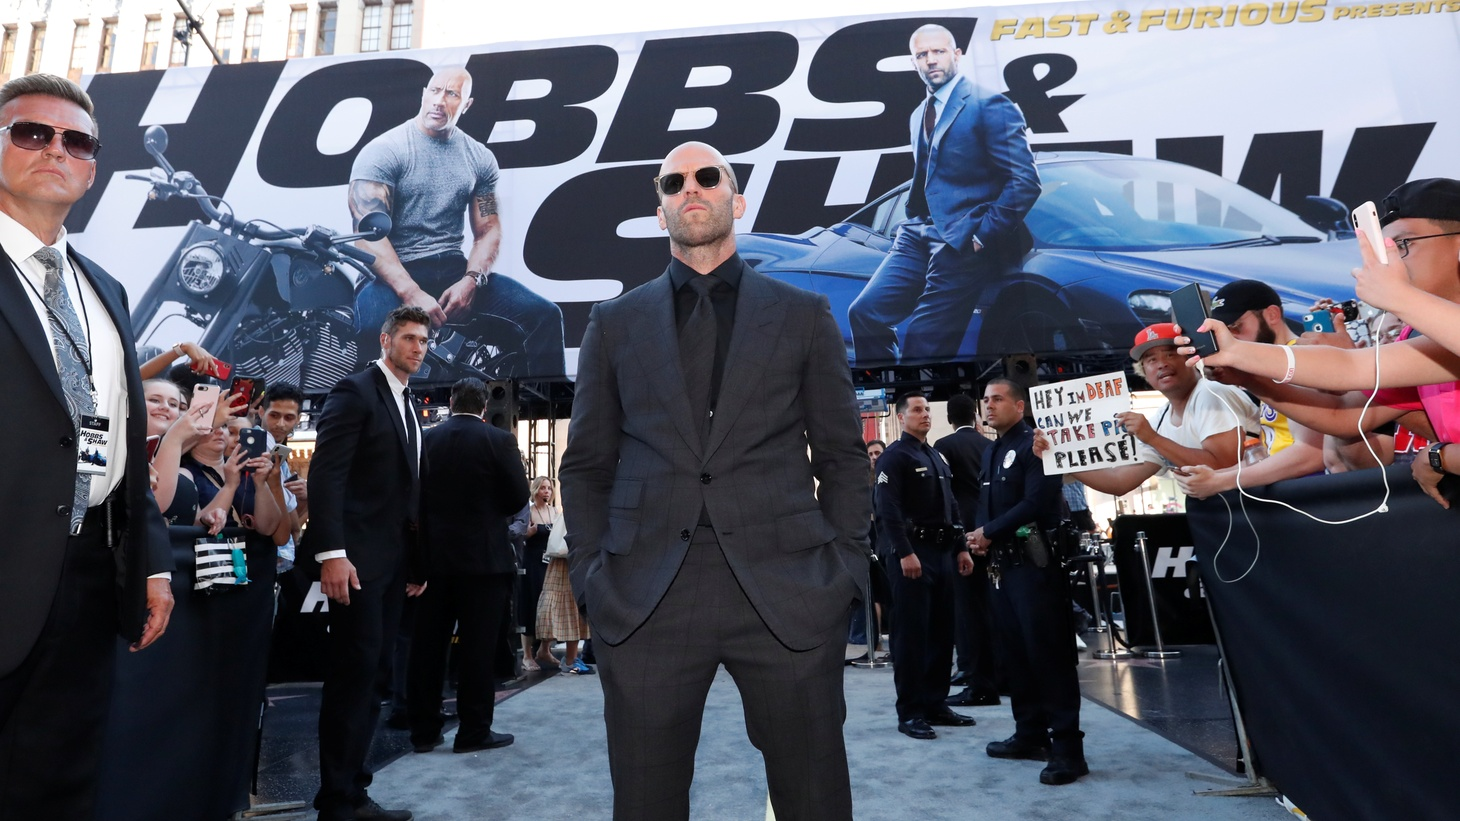 """Cast member and producer Jason Statham arrives at the premiere for """"Fast & Furious Presents: Hobbs & Shaw"""" in Los Angeles, California, U.S., July 13, 2019."""